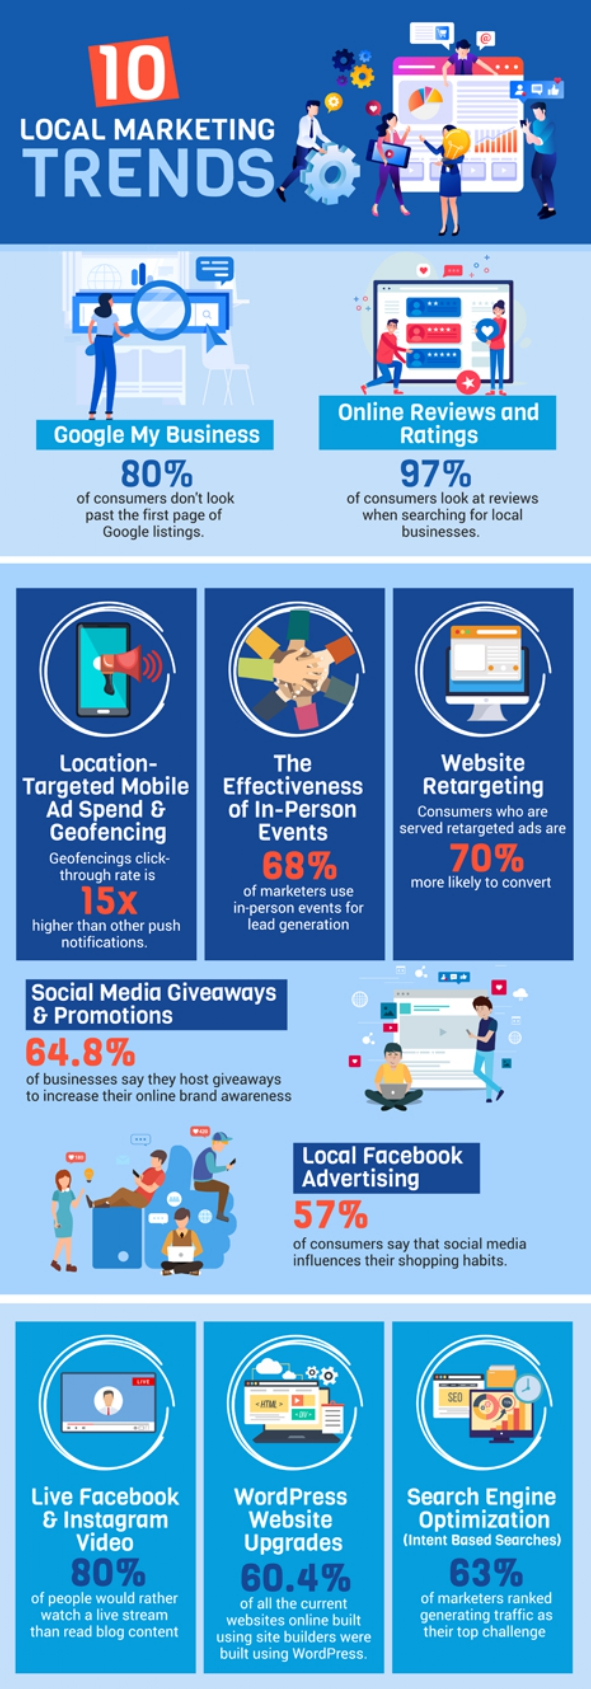 Infographic : 10 LOCAL MARKETING TRENDS